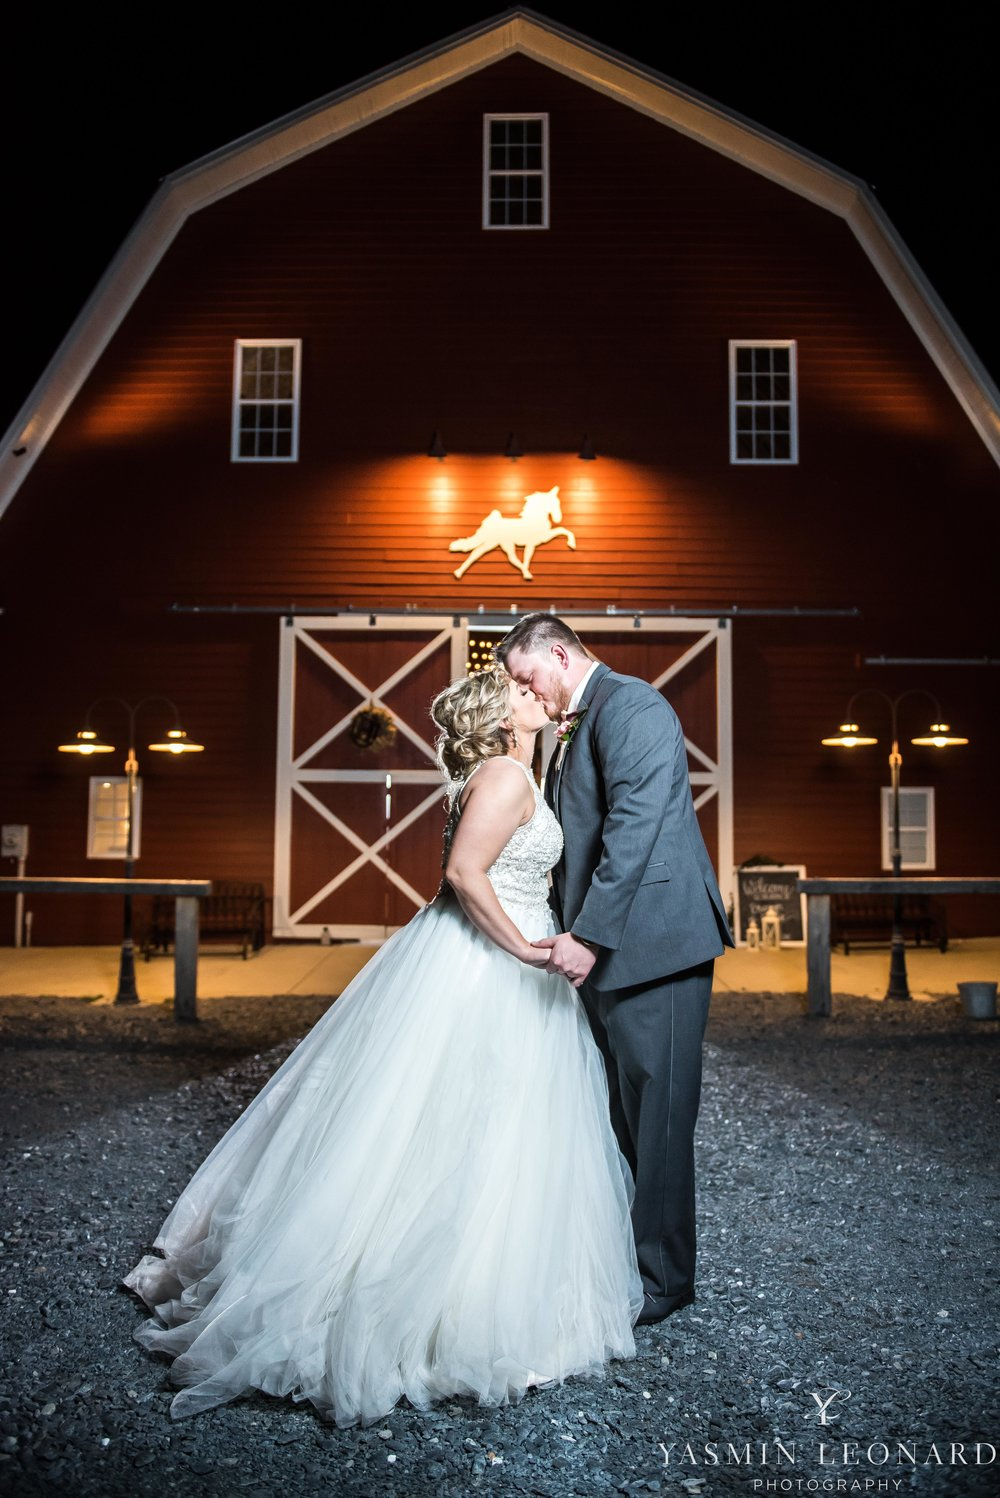 Millikan Farms - Millikan Farms Wedding - Sophia NC Wedding - NC Wedding - NC Wedding Photographer - Yasmin Leonard Photography - High Point Photographer - Barn Wedding - Wedding Venues in NC - Triad Wedding Photographer-95.jpg